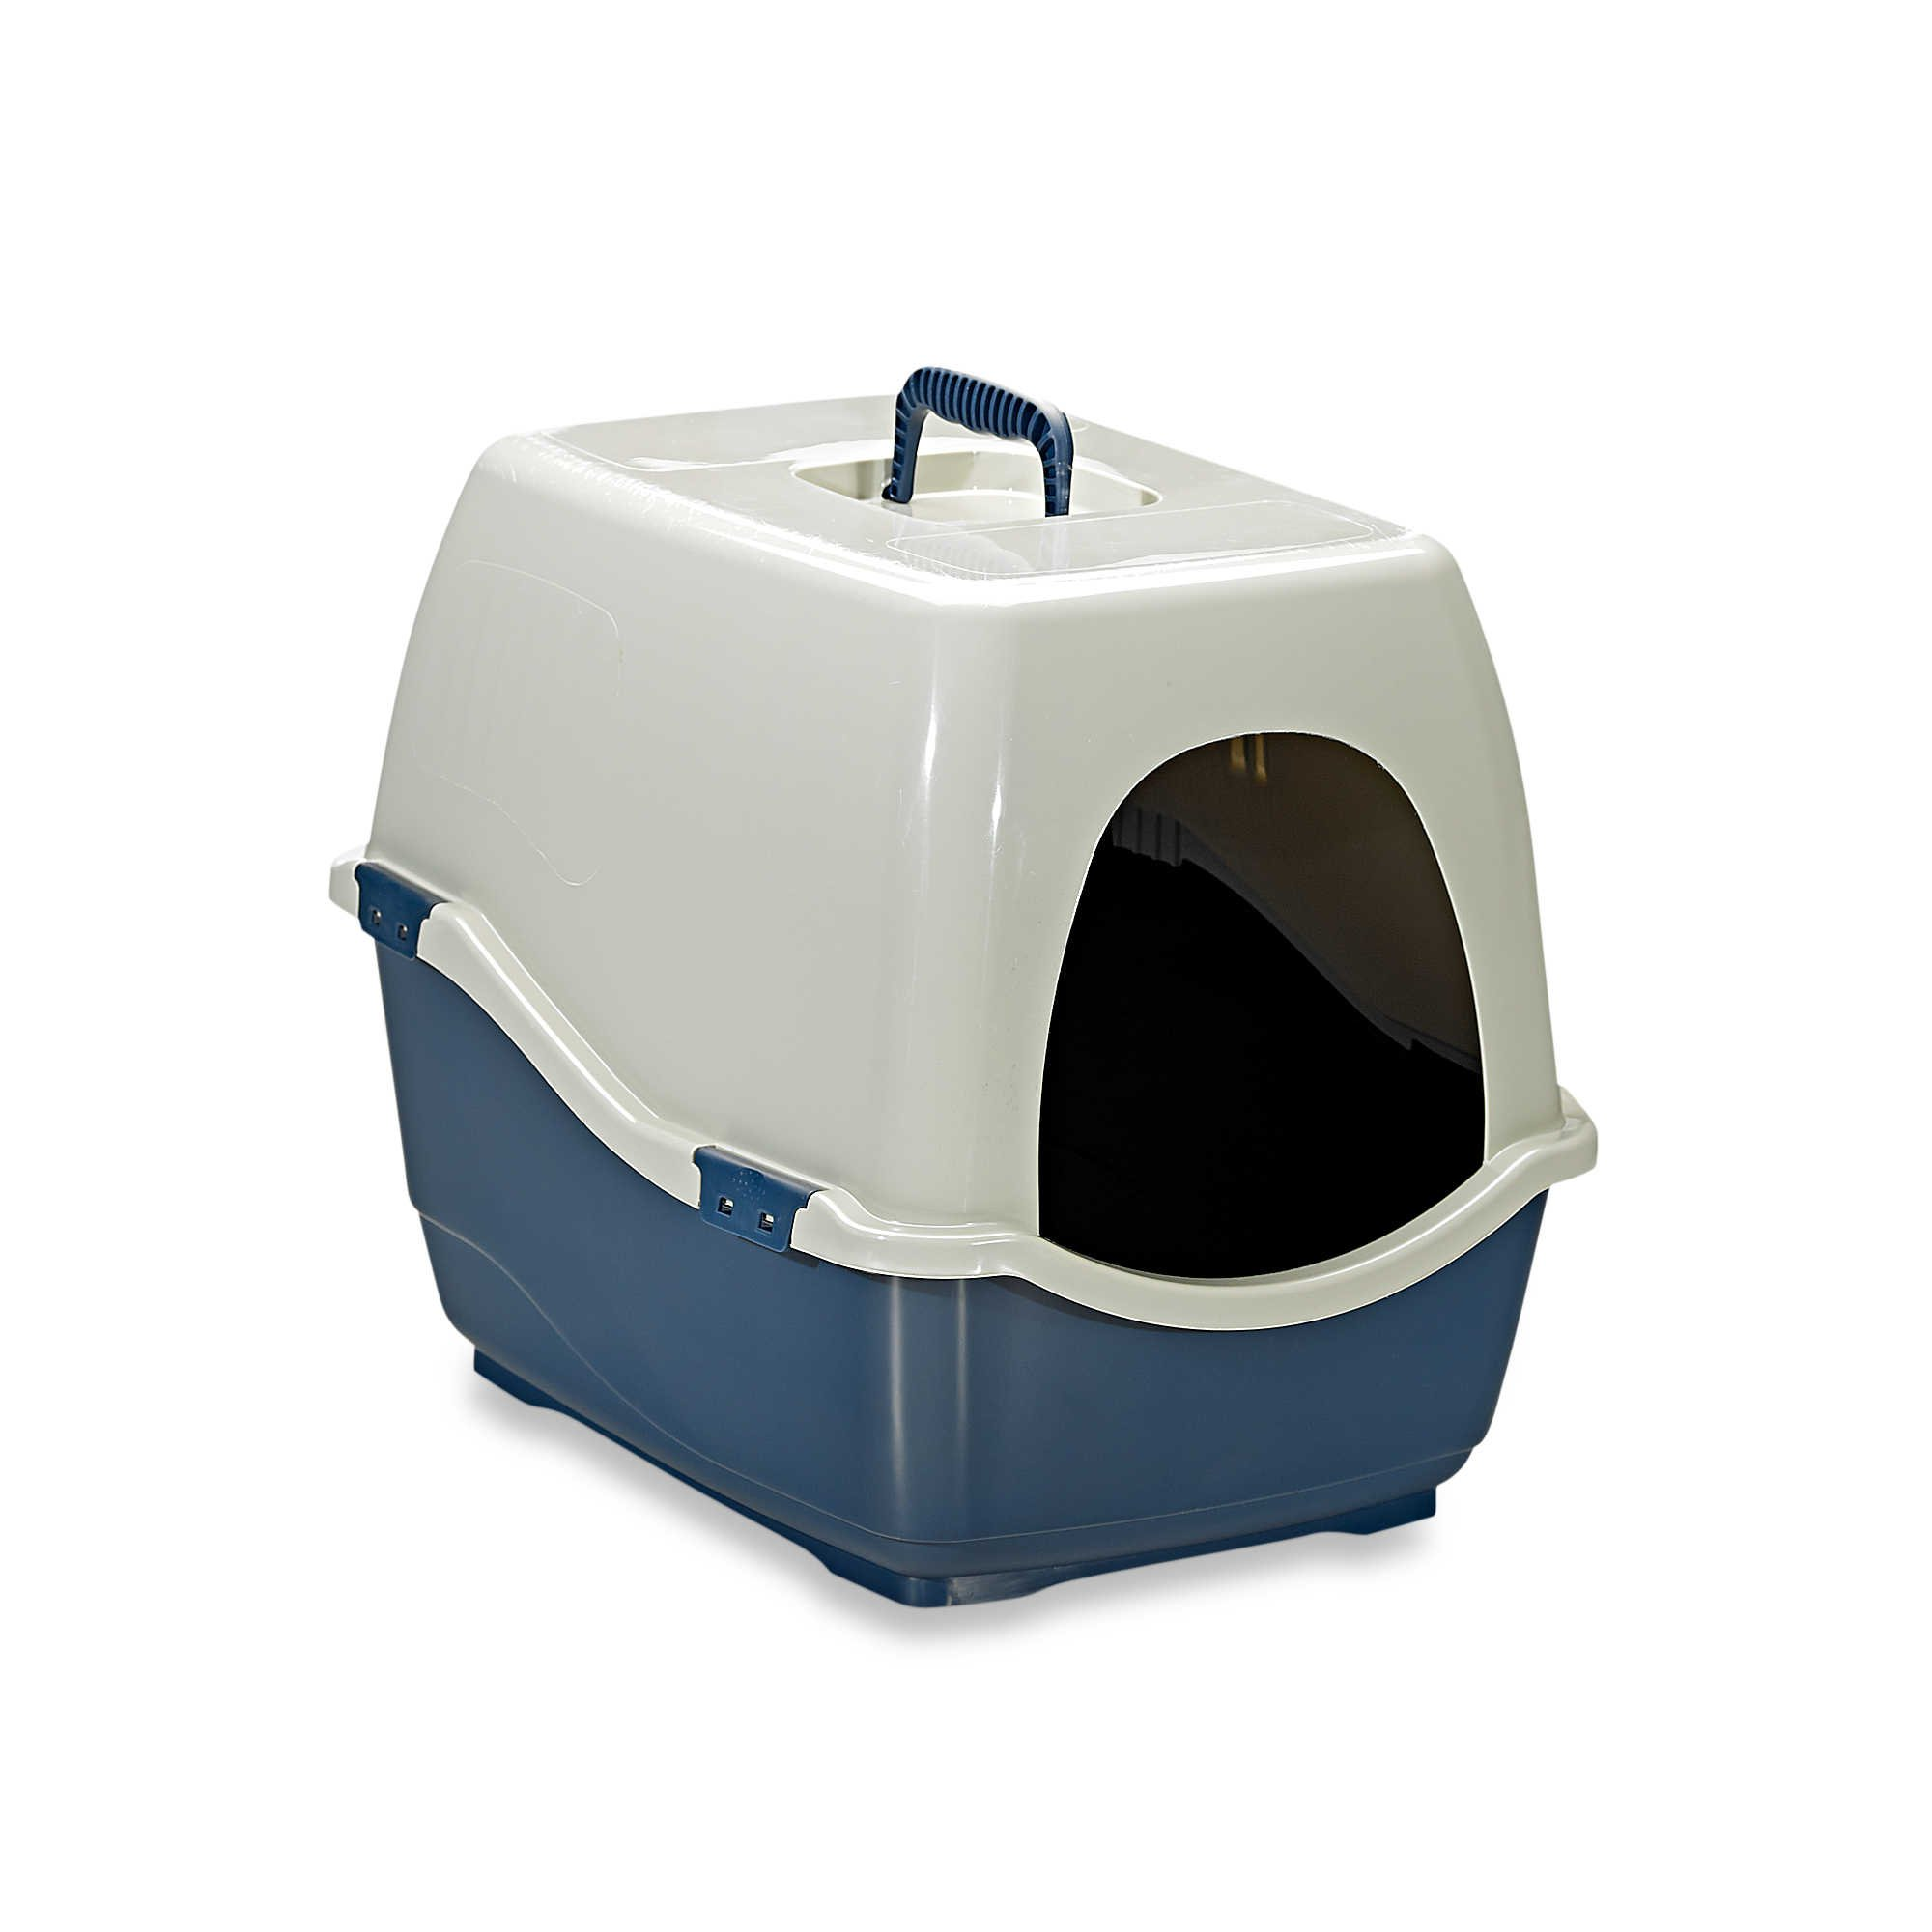 Marchioro Bill Eco Enclosed Large Cat Litter Pan in Blue